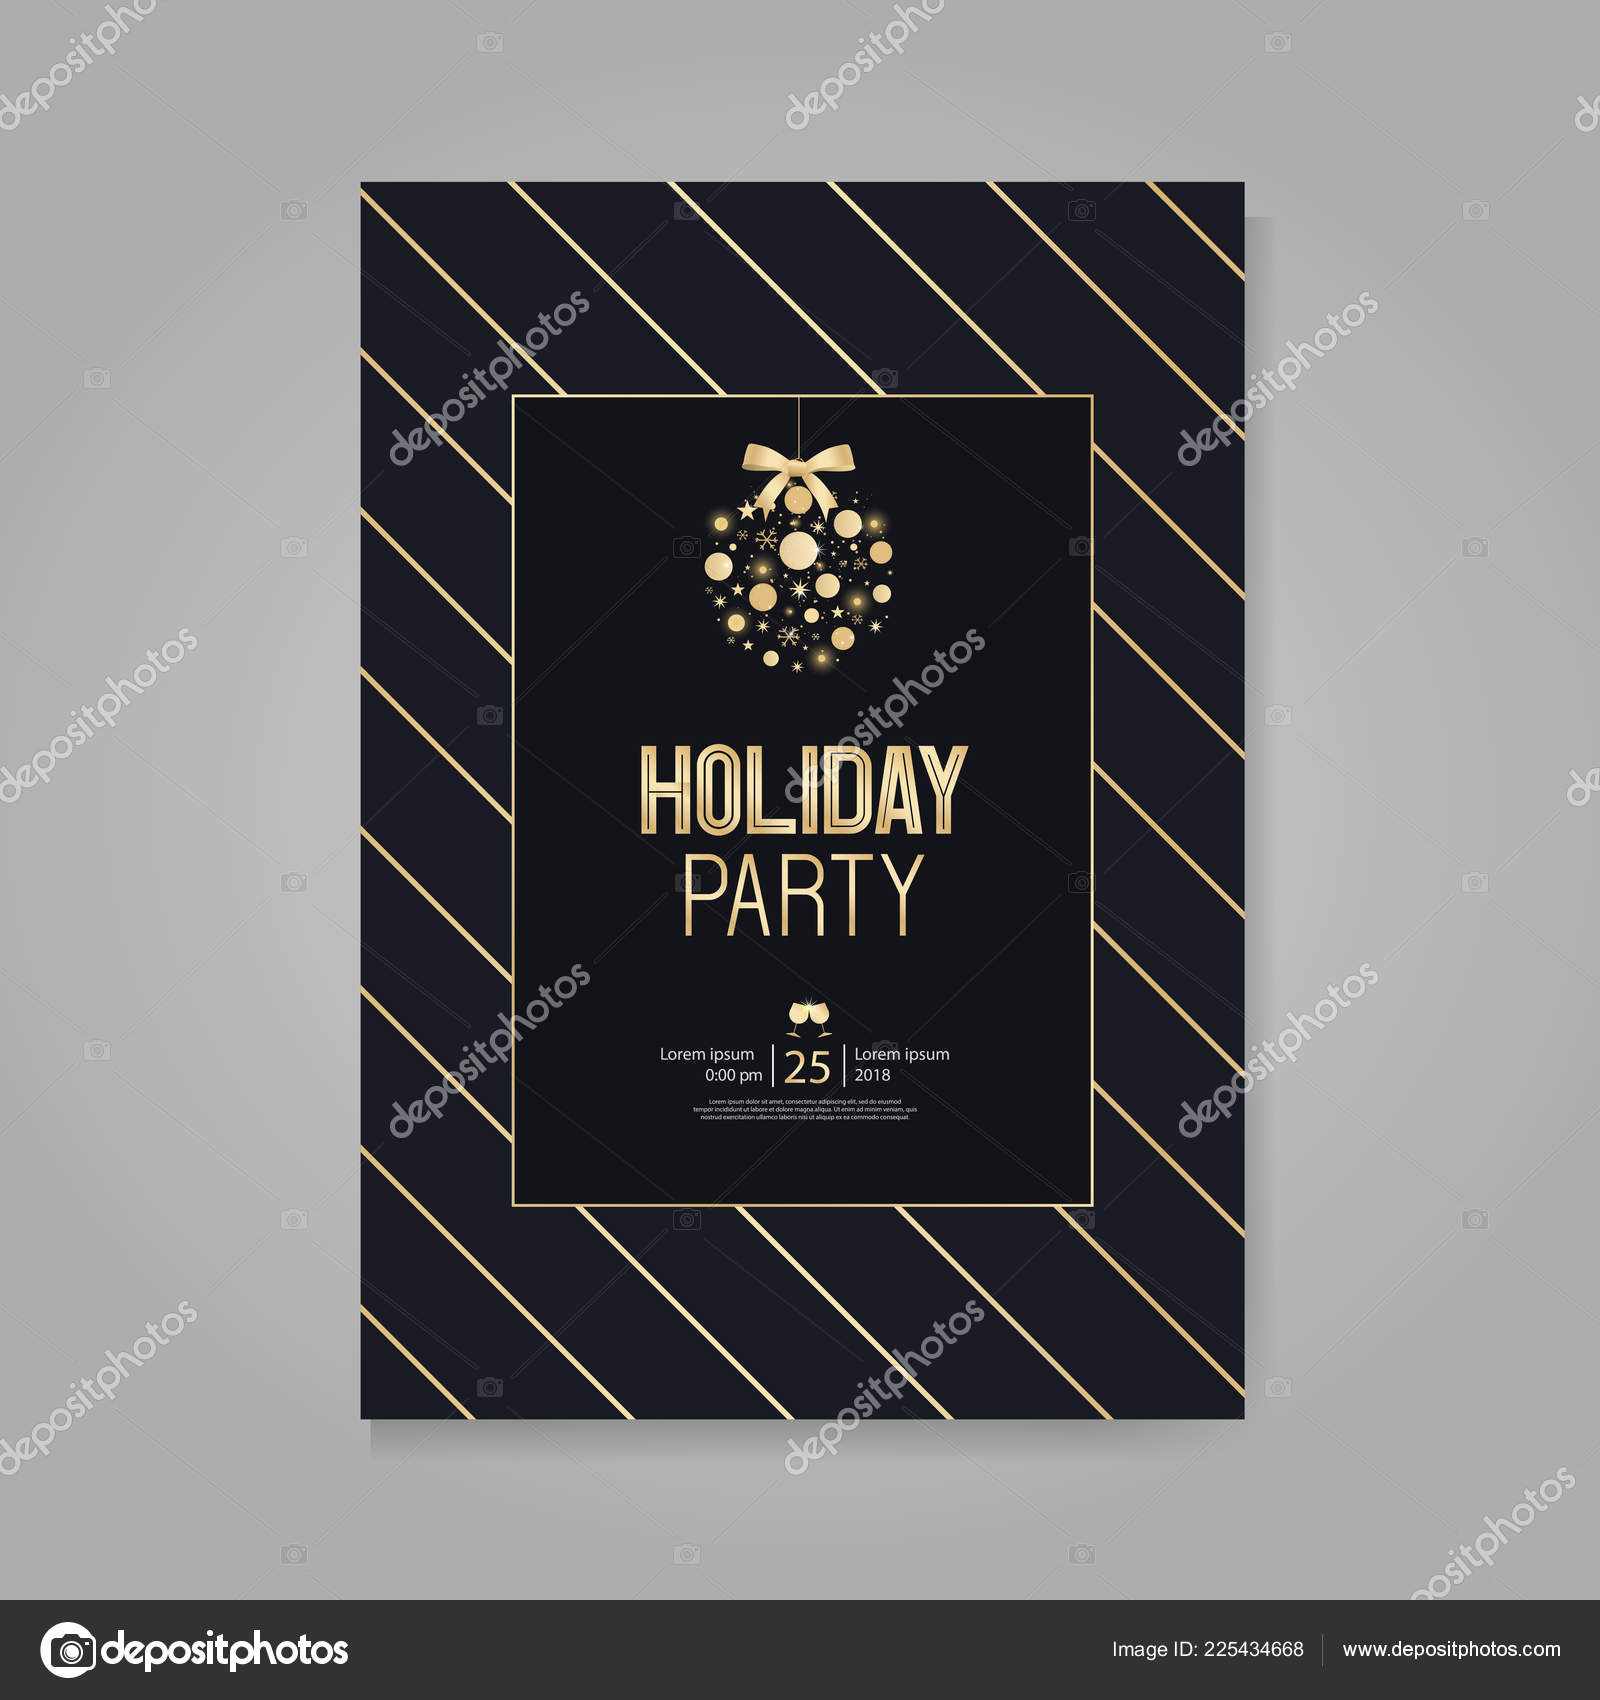 vector illustration design holiday party happy new year party invitation stock vector